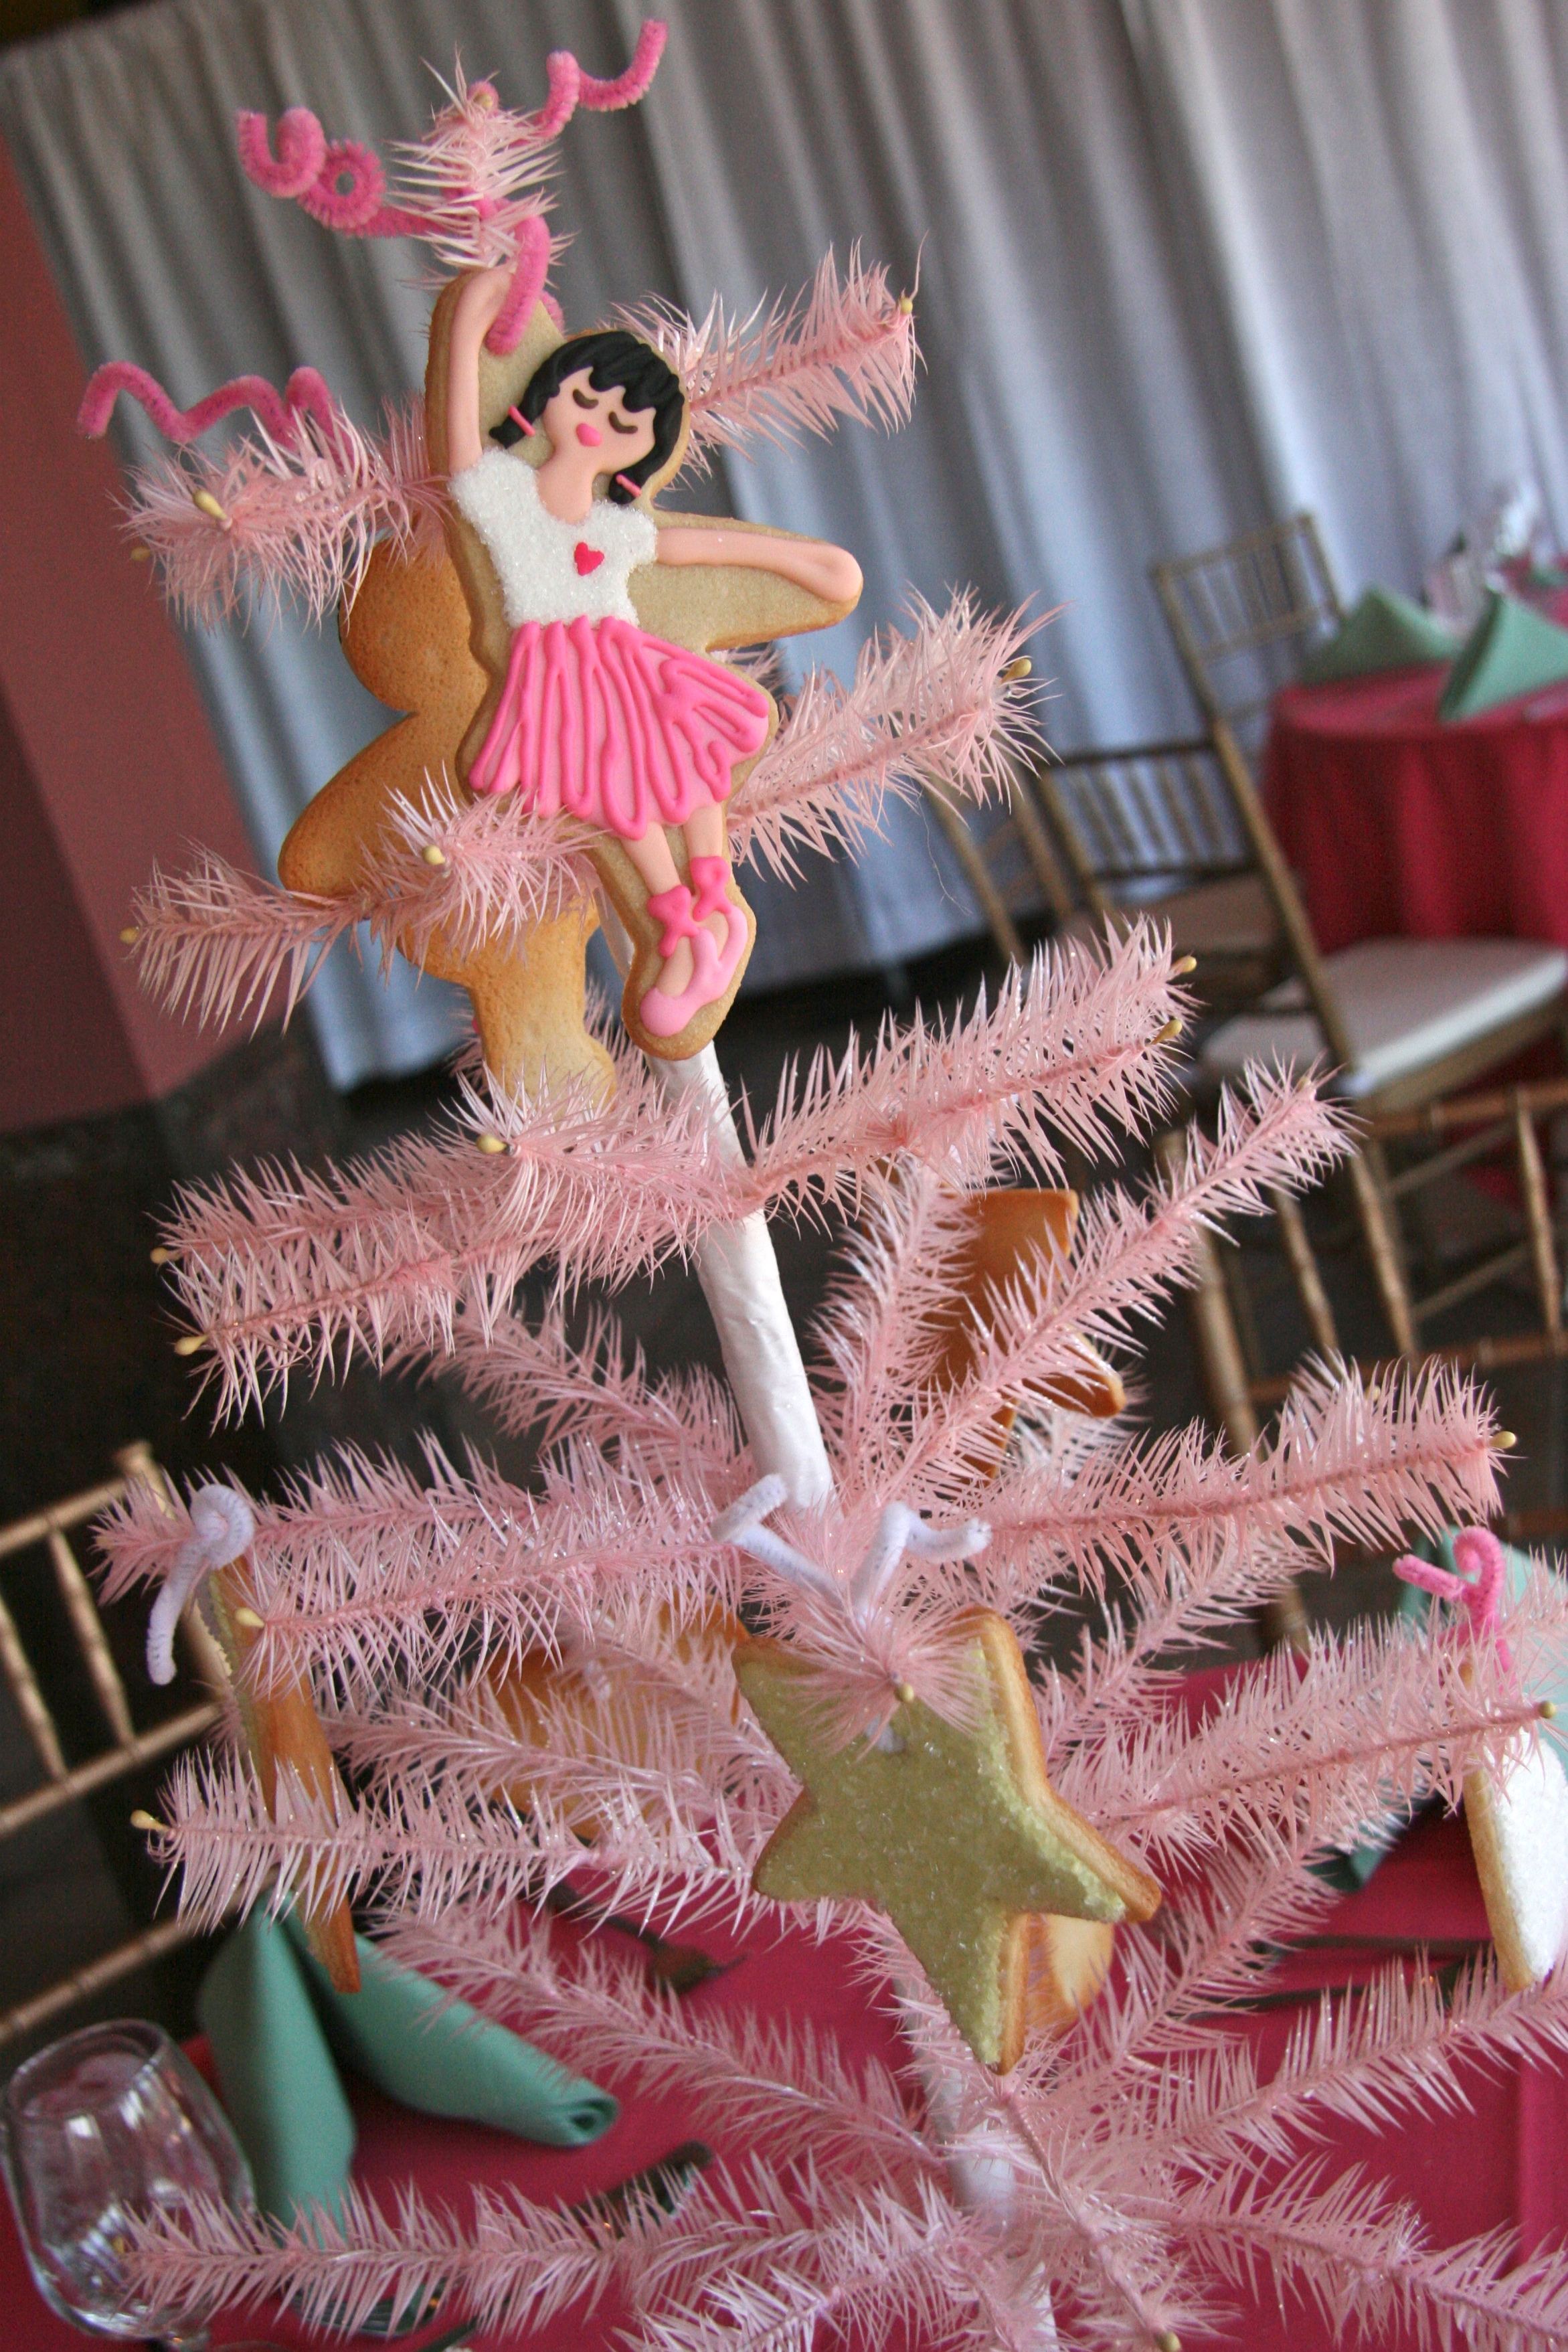 Pink Feather Tree with Ballerina in 3rd Position